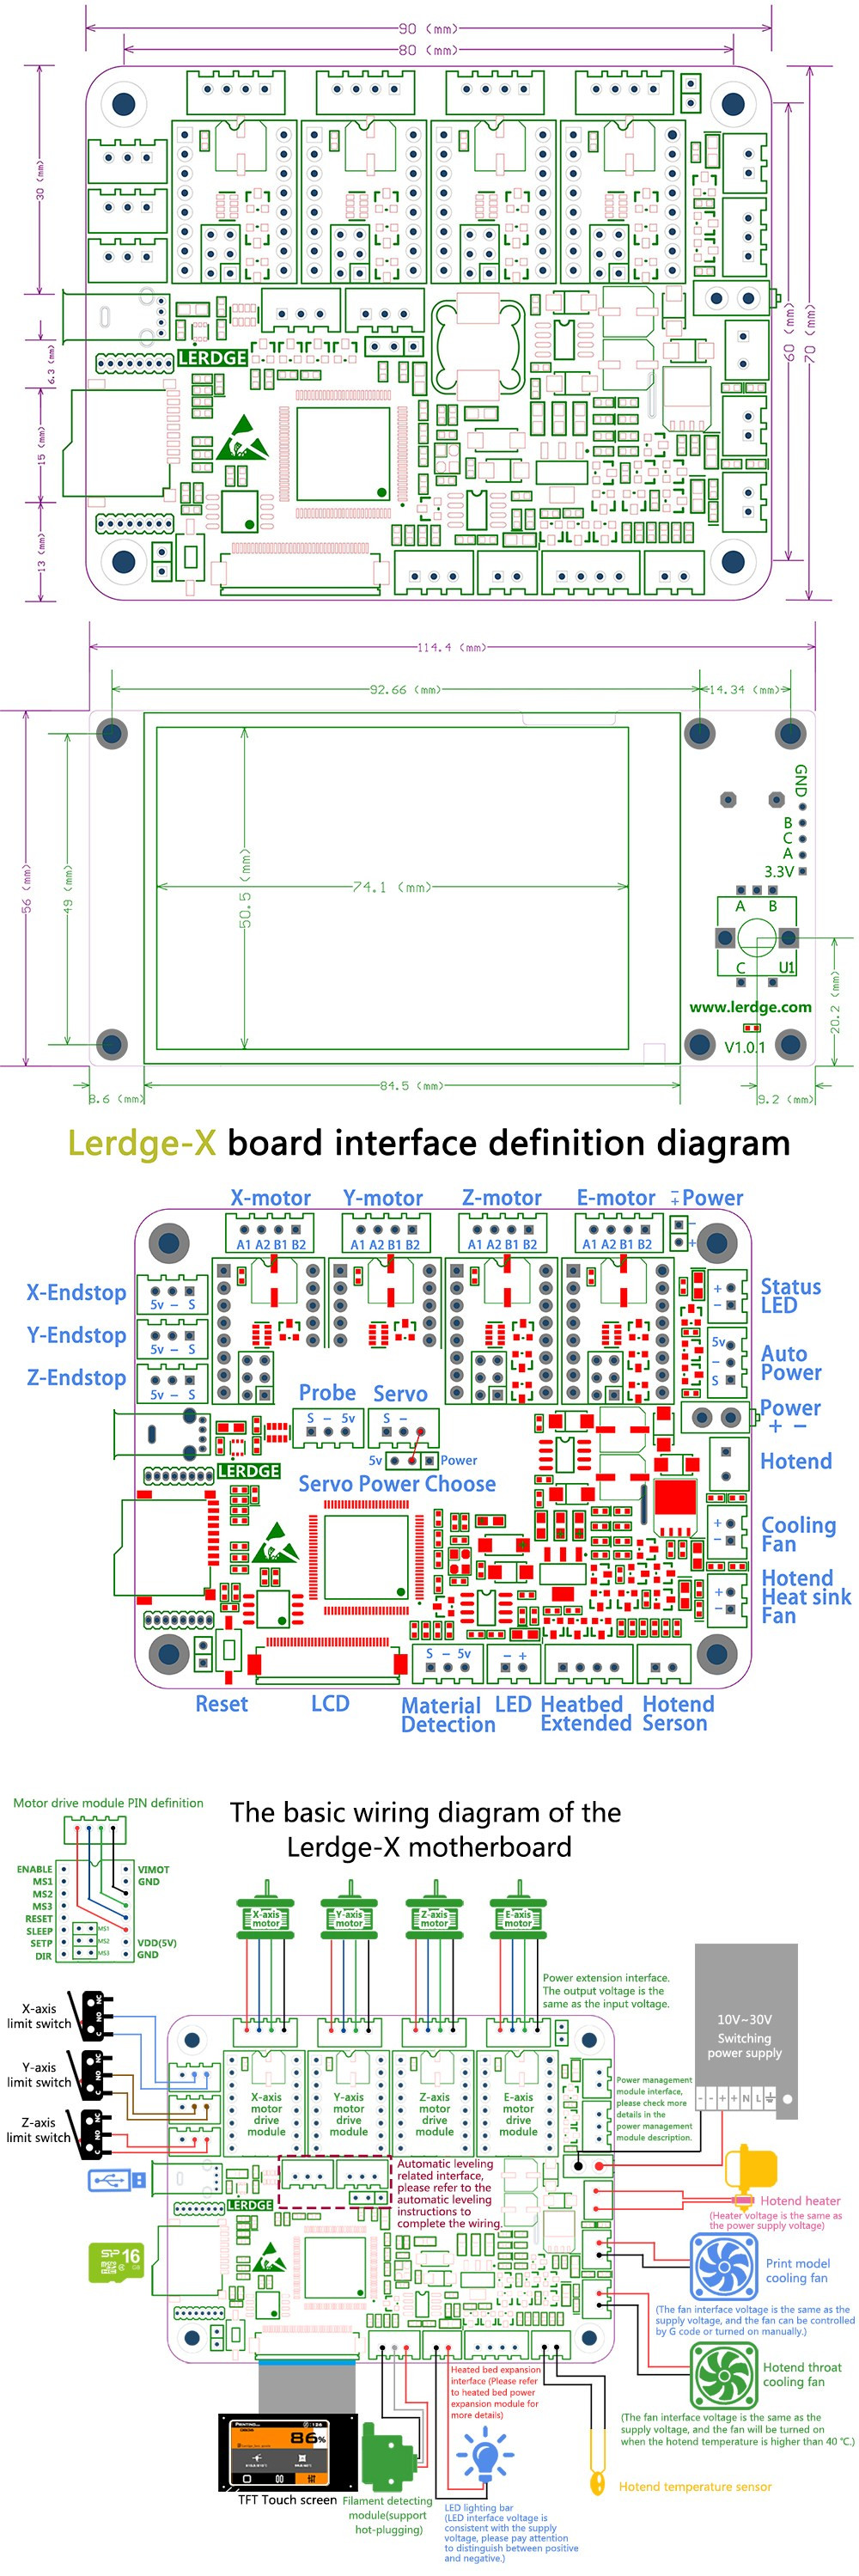 Lerdge® X Integrated Controller Board Mainboard With 32-bit Coretx-M4 Core Control Unit + 3.5inch LCD Touch Screen For Reprap 3D Printer